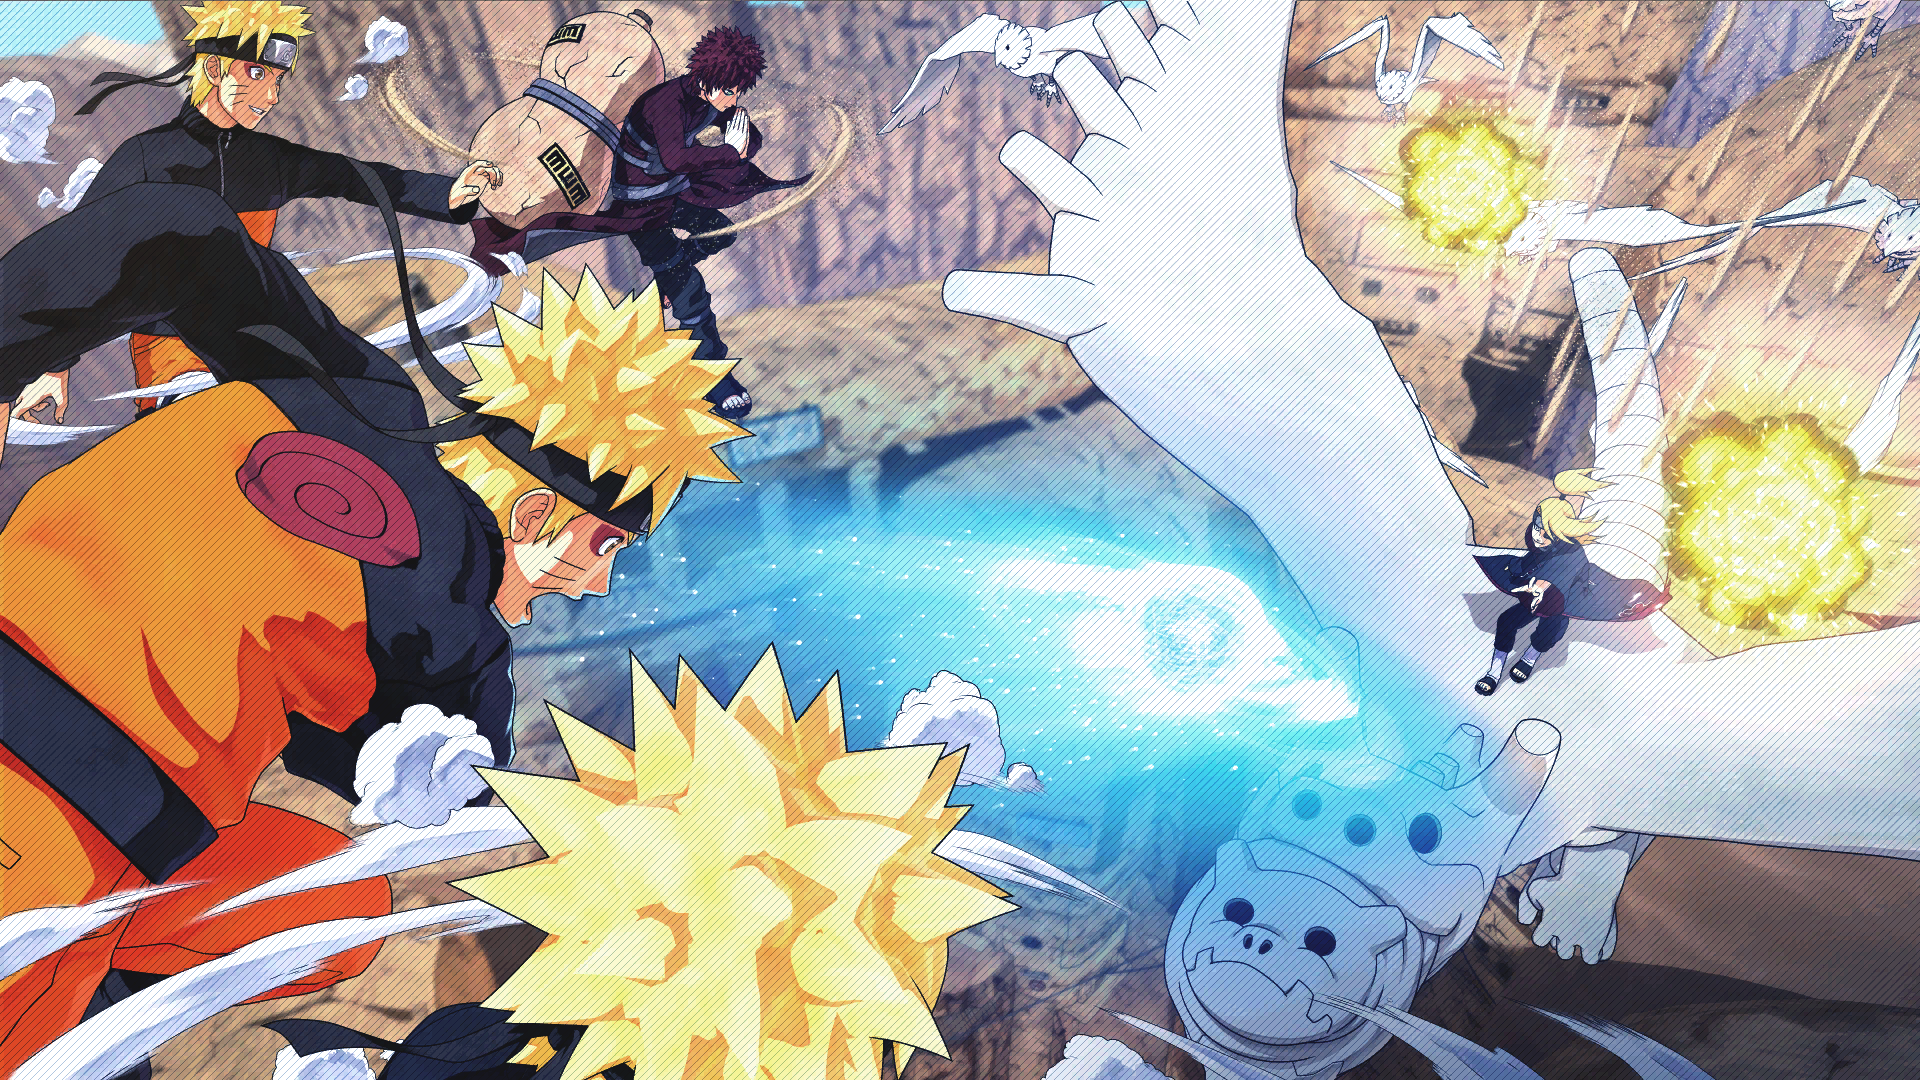 Naruto, Gaara vs Deidara Loading Screen Art (Naruto to Boruto Shinobi Striker)